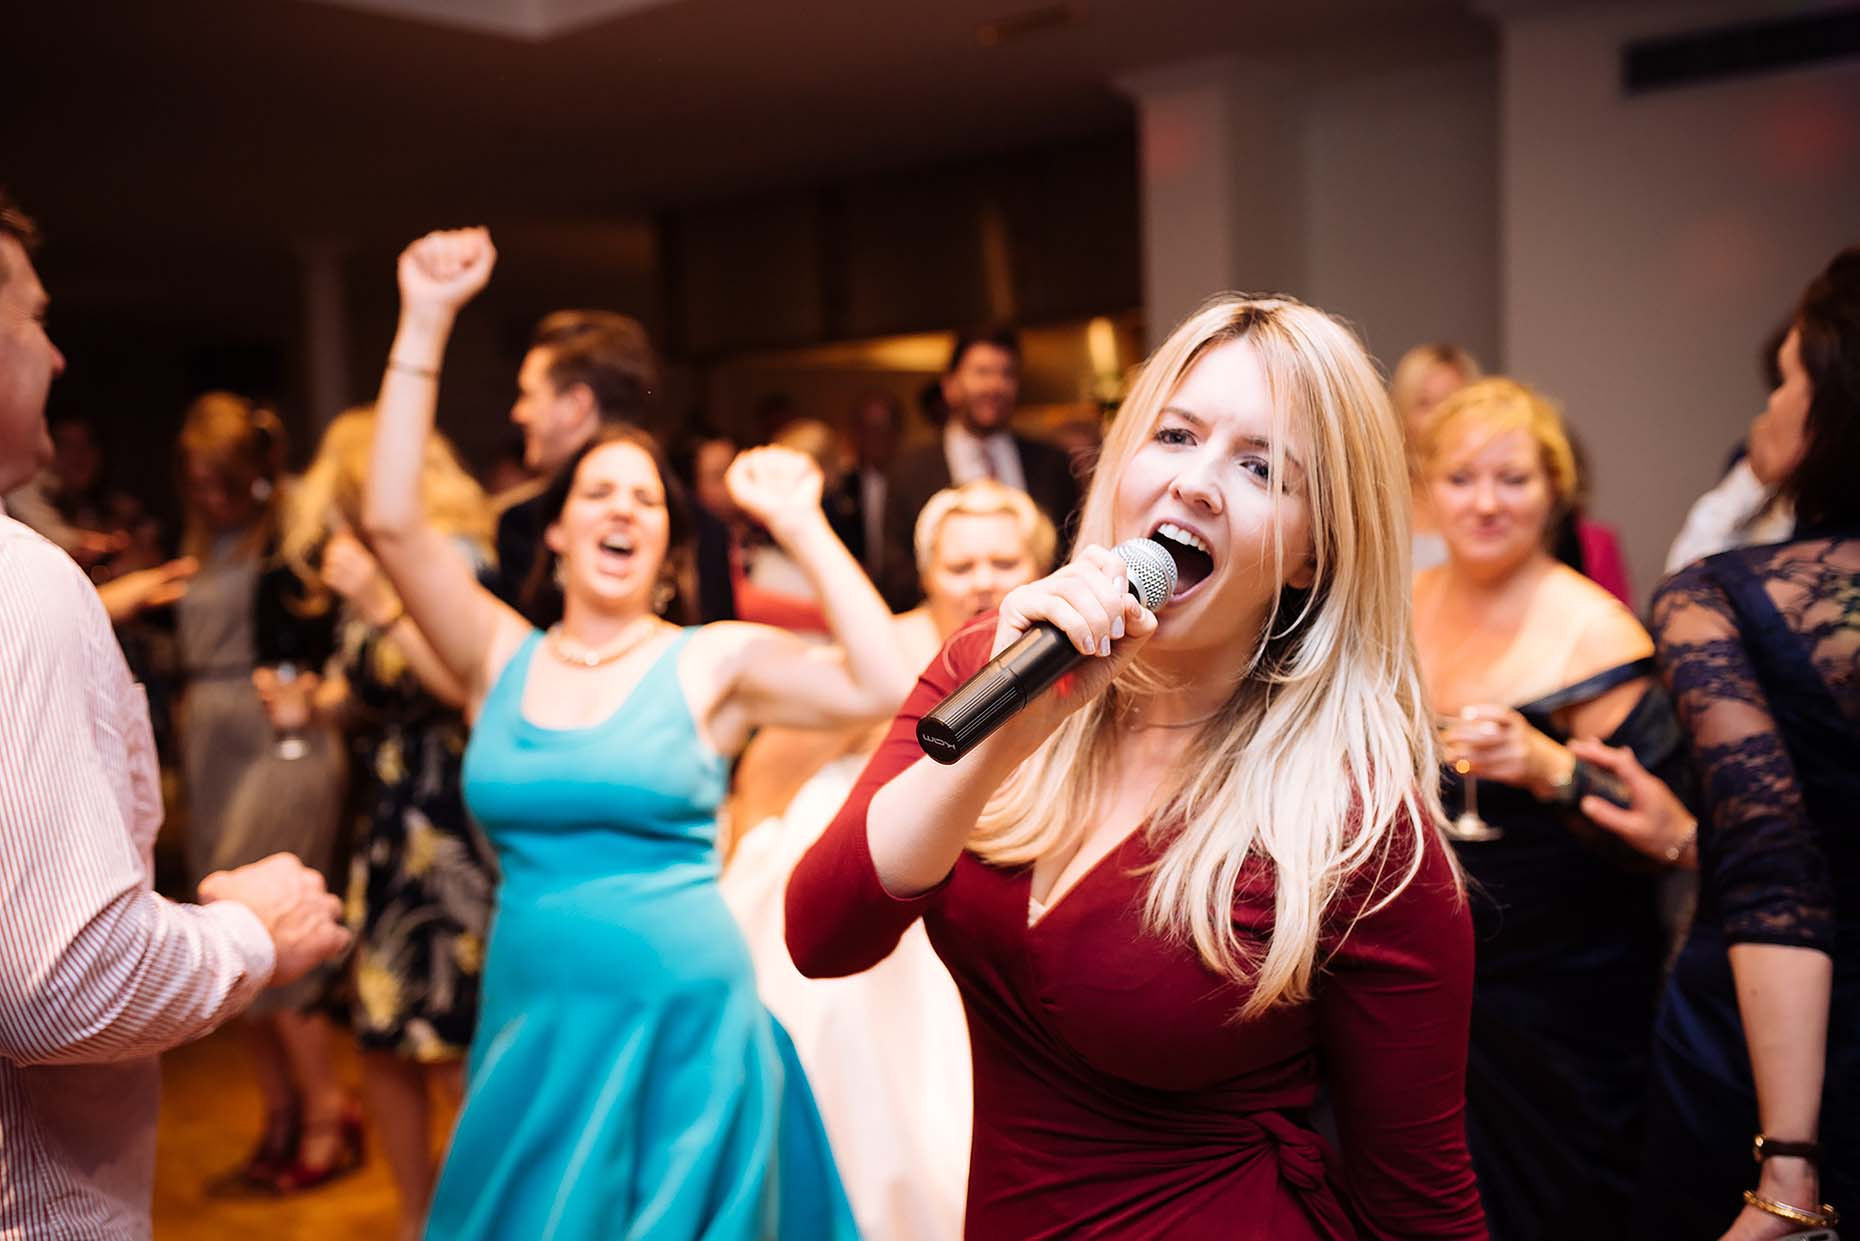 riveria-weymouth-weddings-photographer-female-attractive-singer-dancefloor-entertainment-25